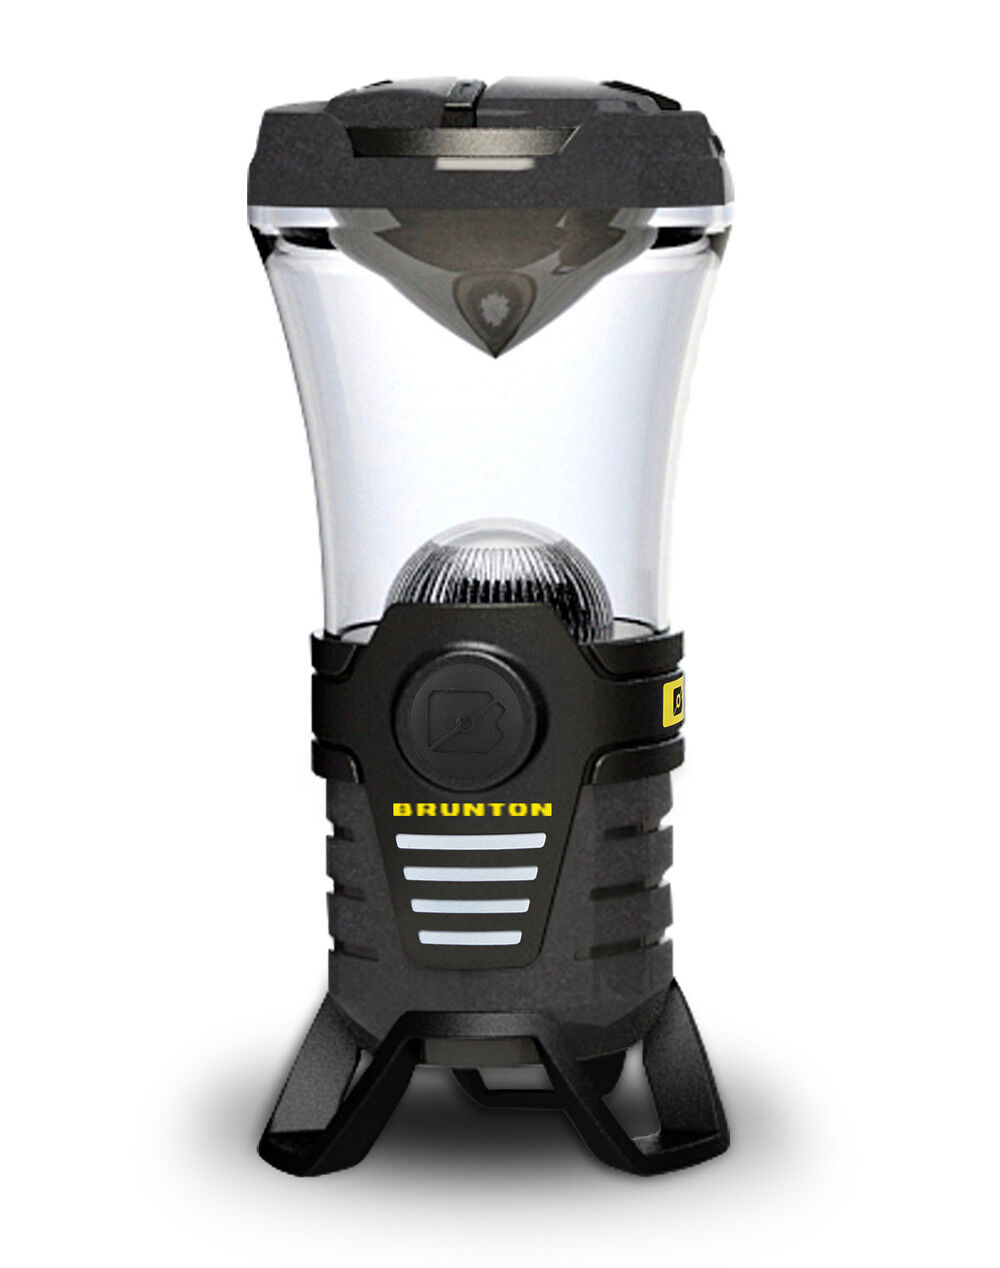 Brunton Lightwave Beam 120 Lumen Rechargeable LED Camping Lantern